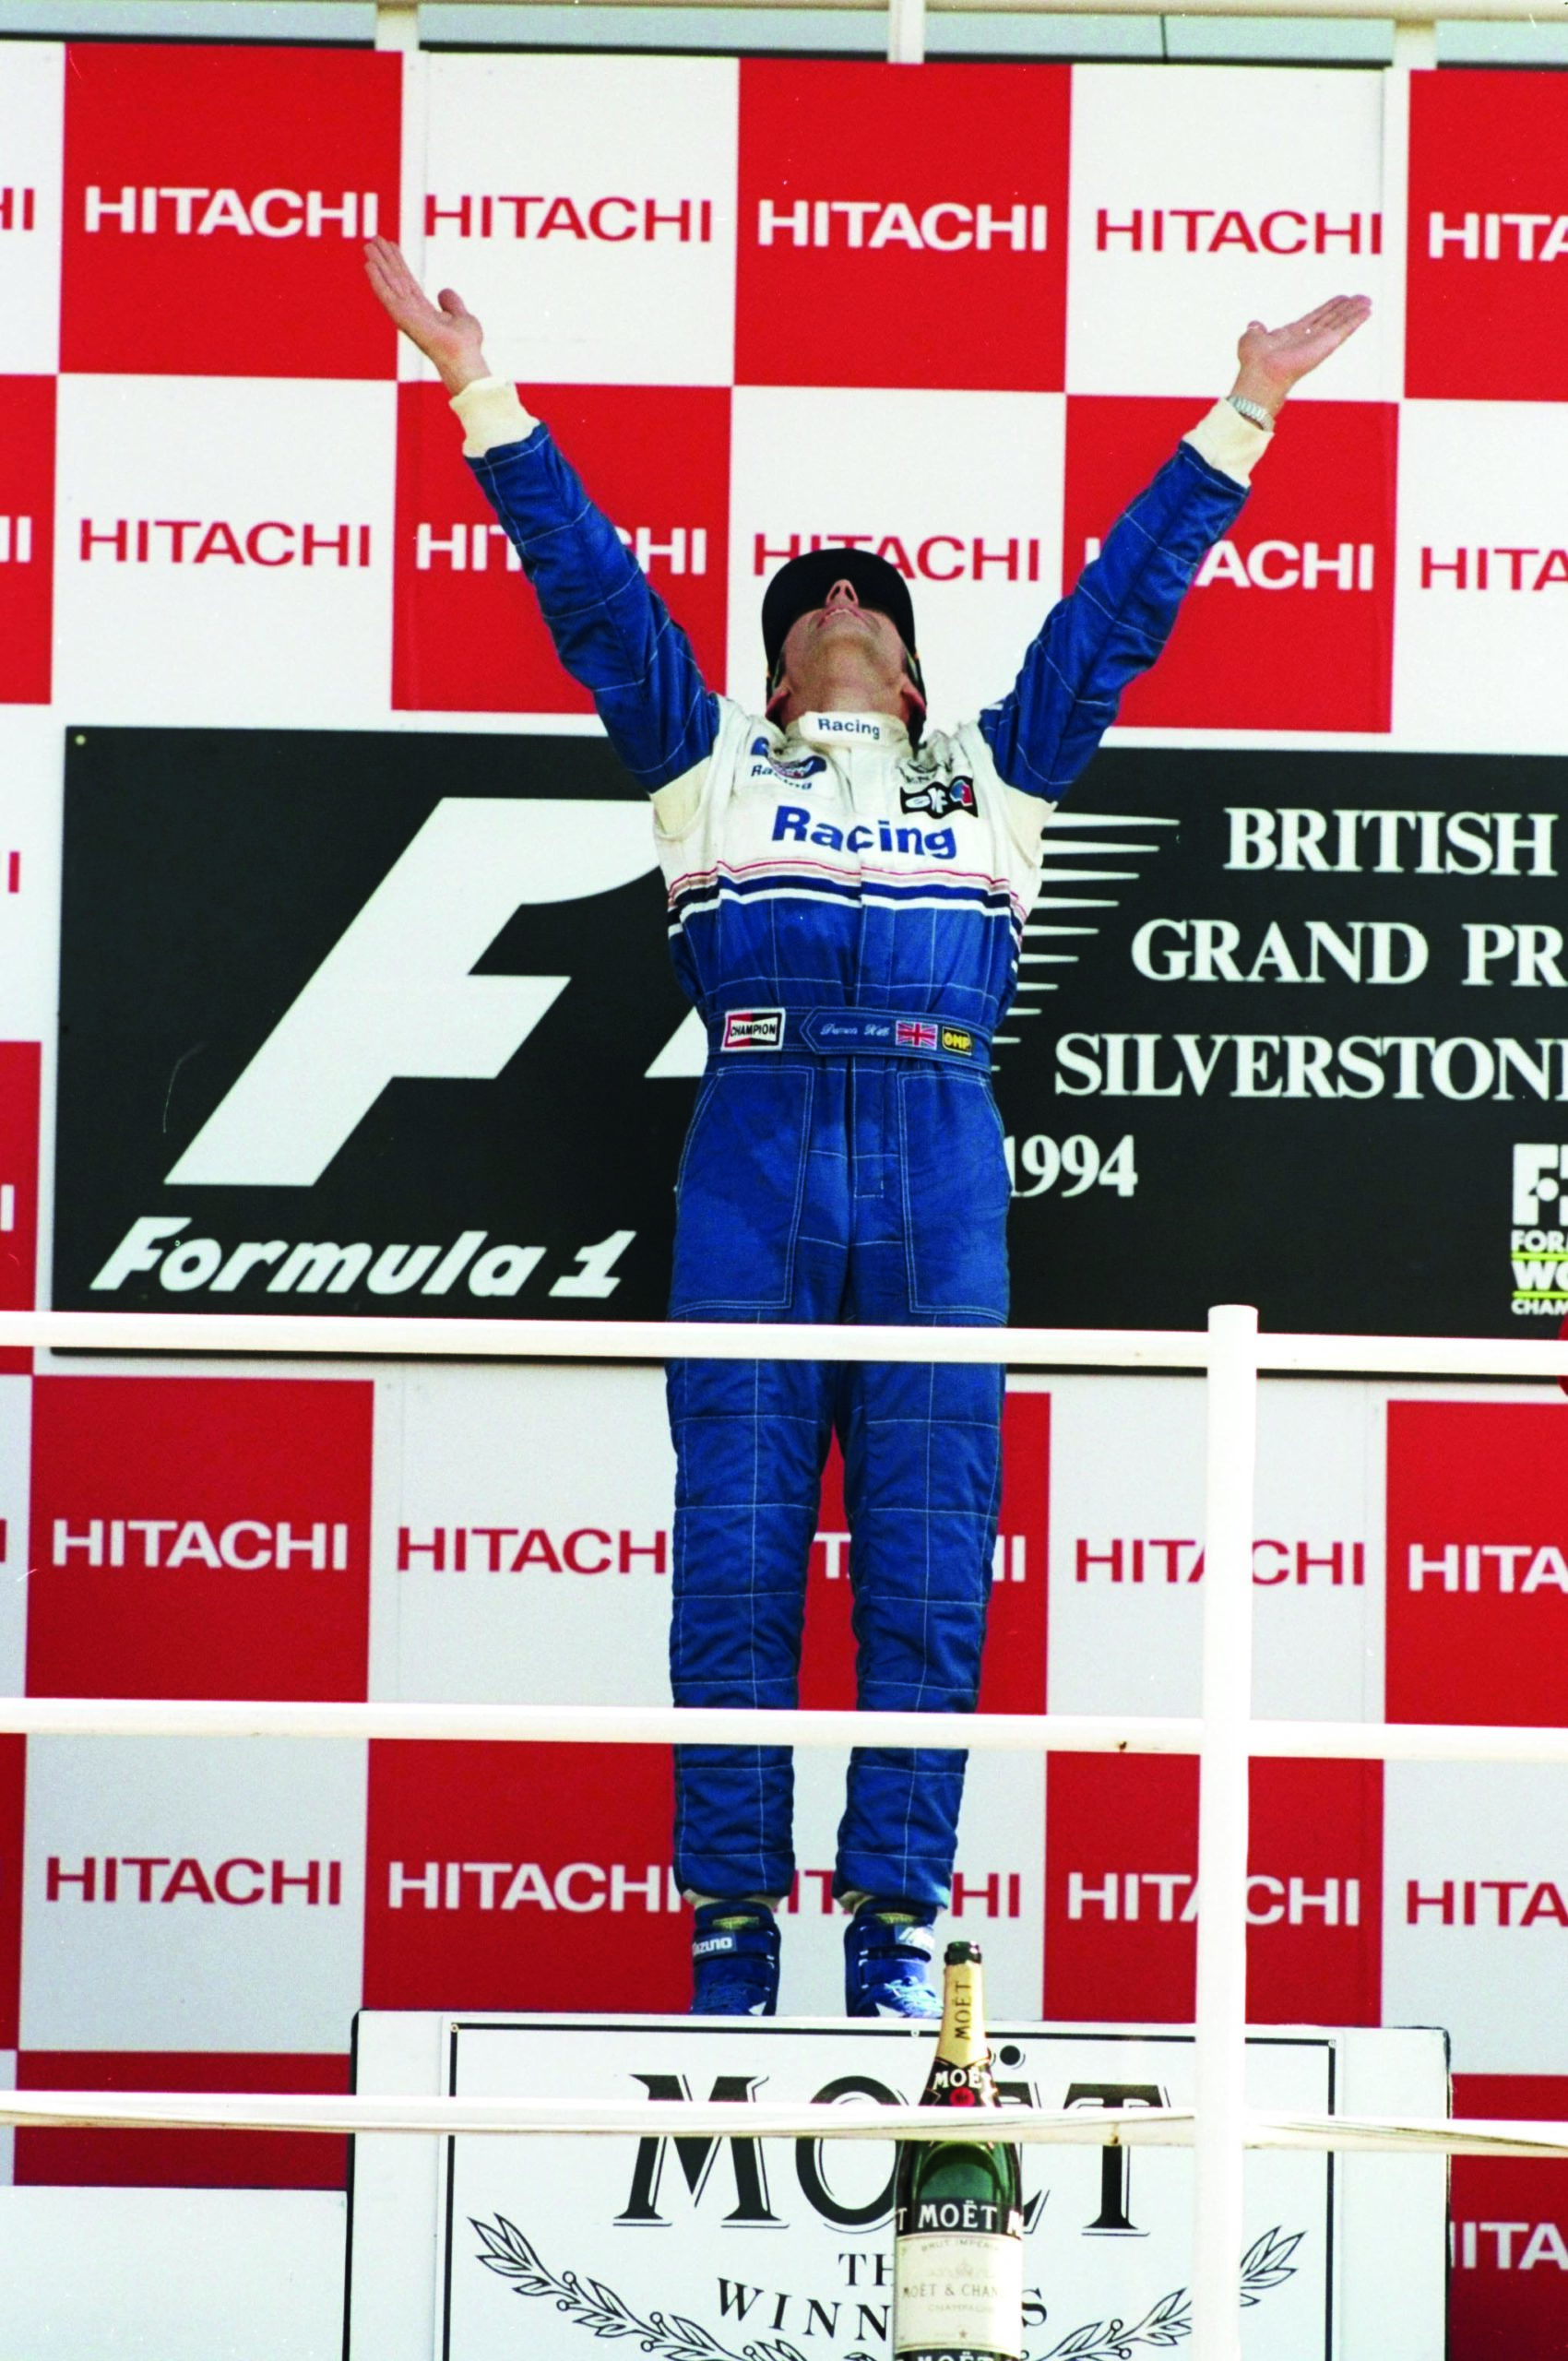 Damon-Hill-raises-his-hands-to-the-air-on-the-podium-after-winning-the-1994-F1-British-Grand-Prix-at-Silverstone